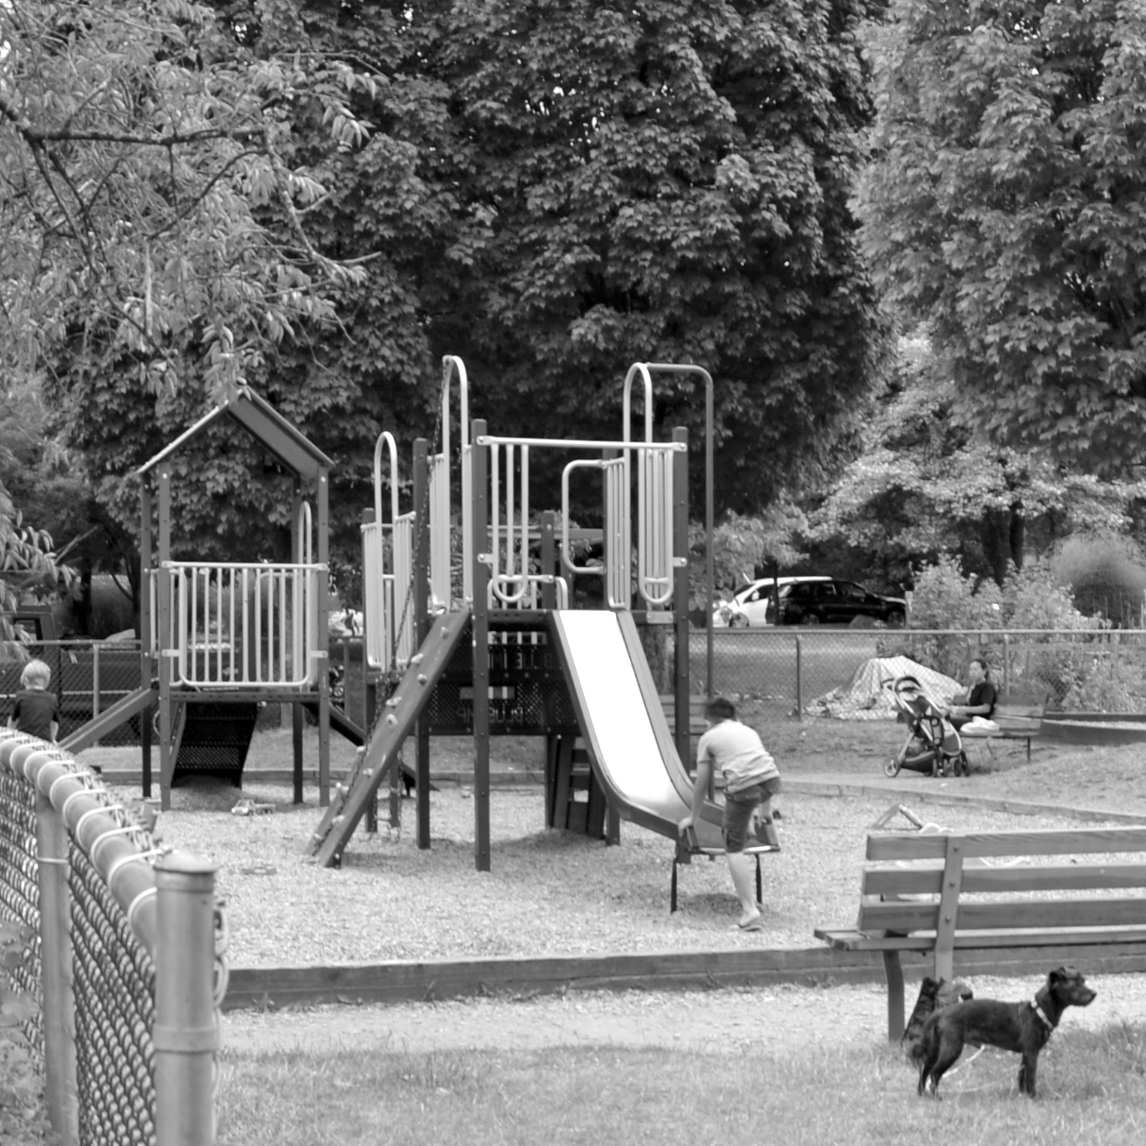 TEA SWAMP PARK   About a 5- to 10-minute walk north-east from my work space, this pocket park and wood-chip playground is intimate and great for all ages.   map